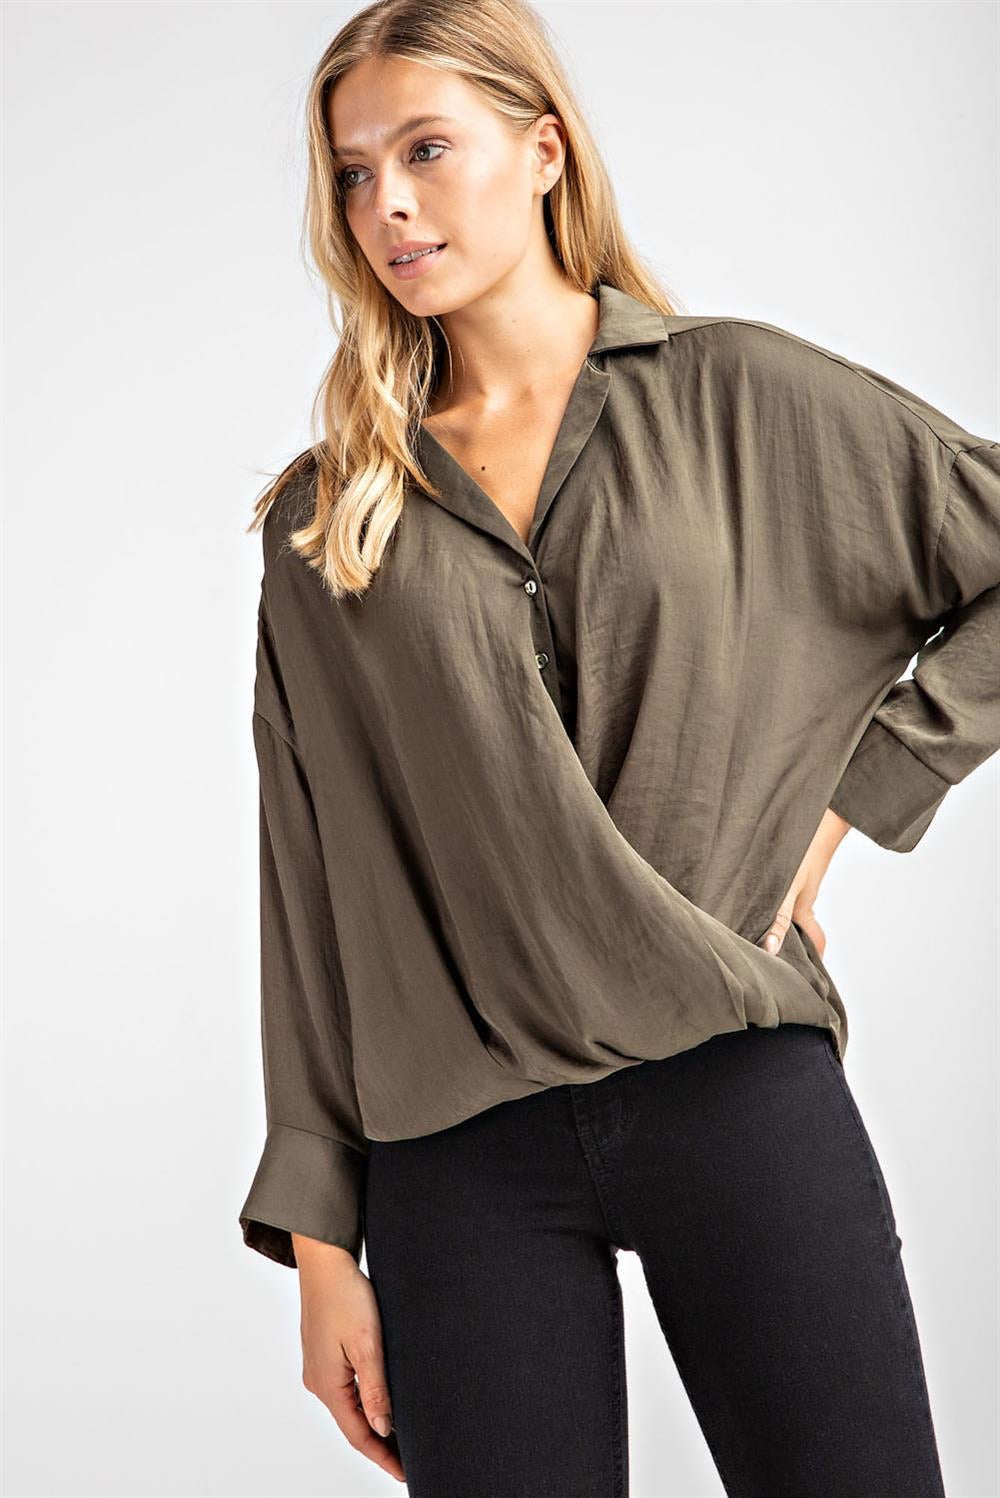 The Ava Blouse